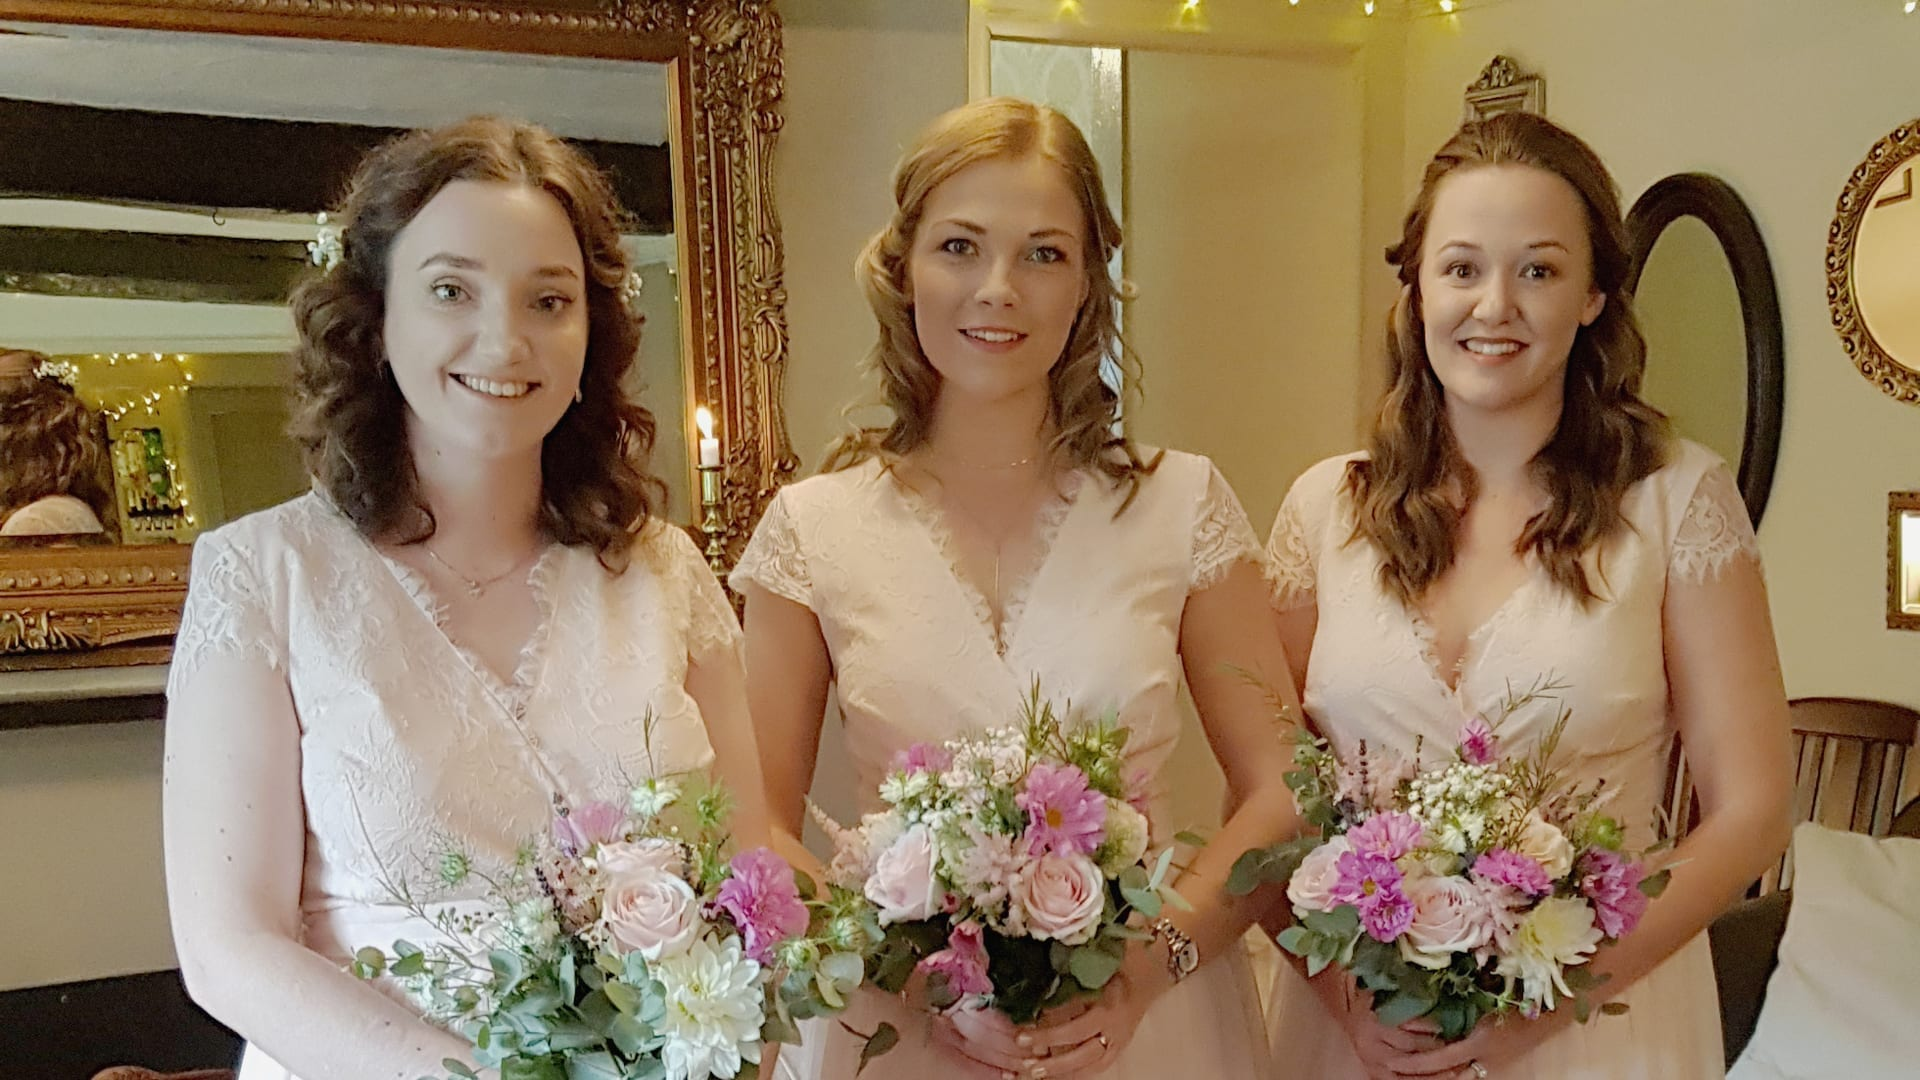 Bridesmaids ready for the wedding ceremony